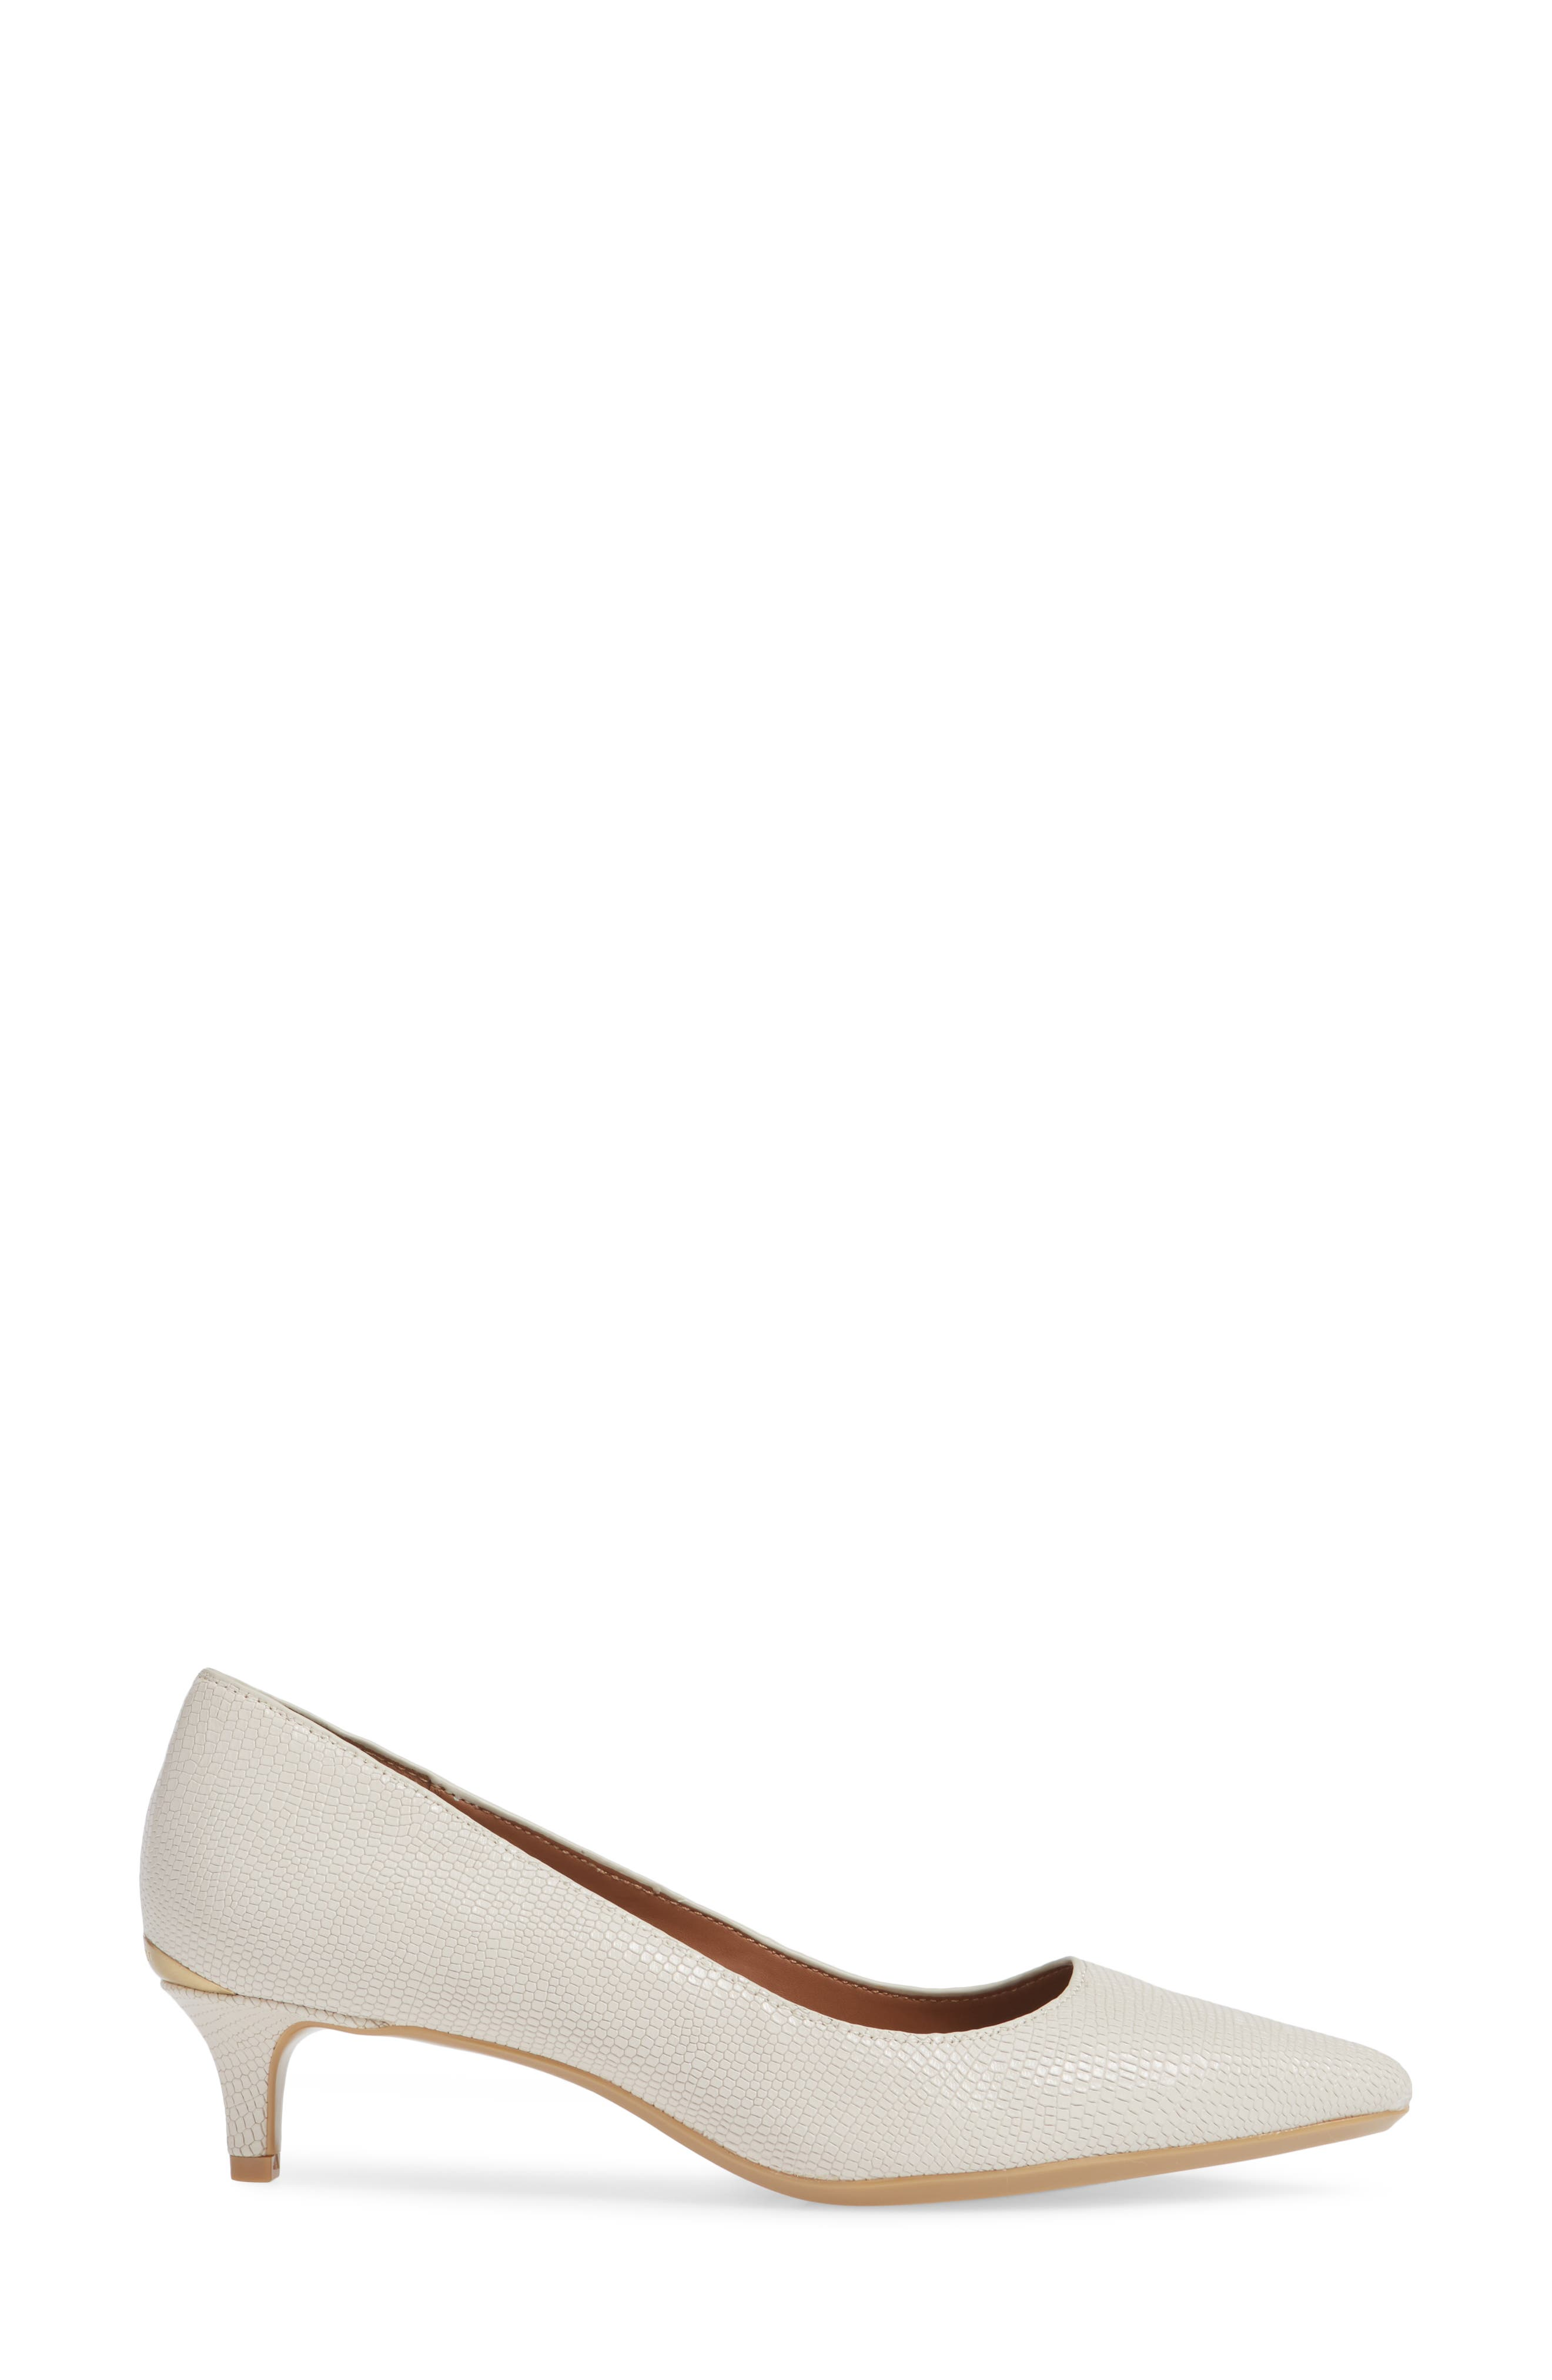 Gabrianna Pump,                             Alternate thumbnail 3, color,                             SOFT WHITE LEATHER